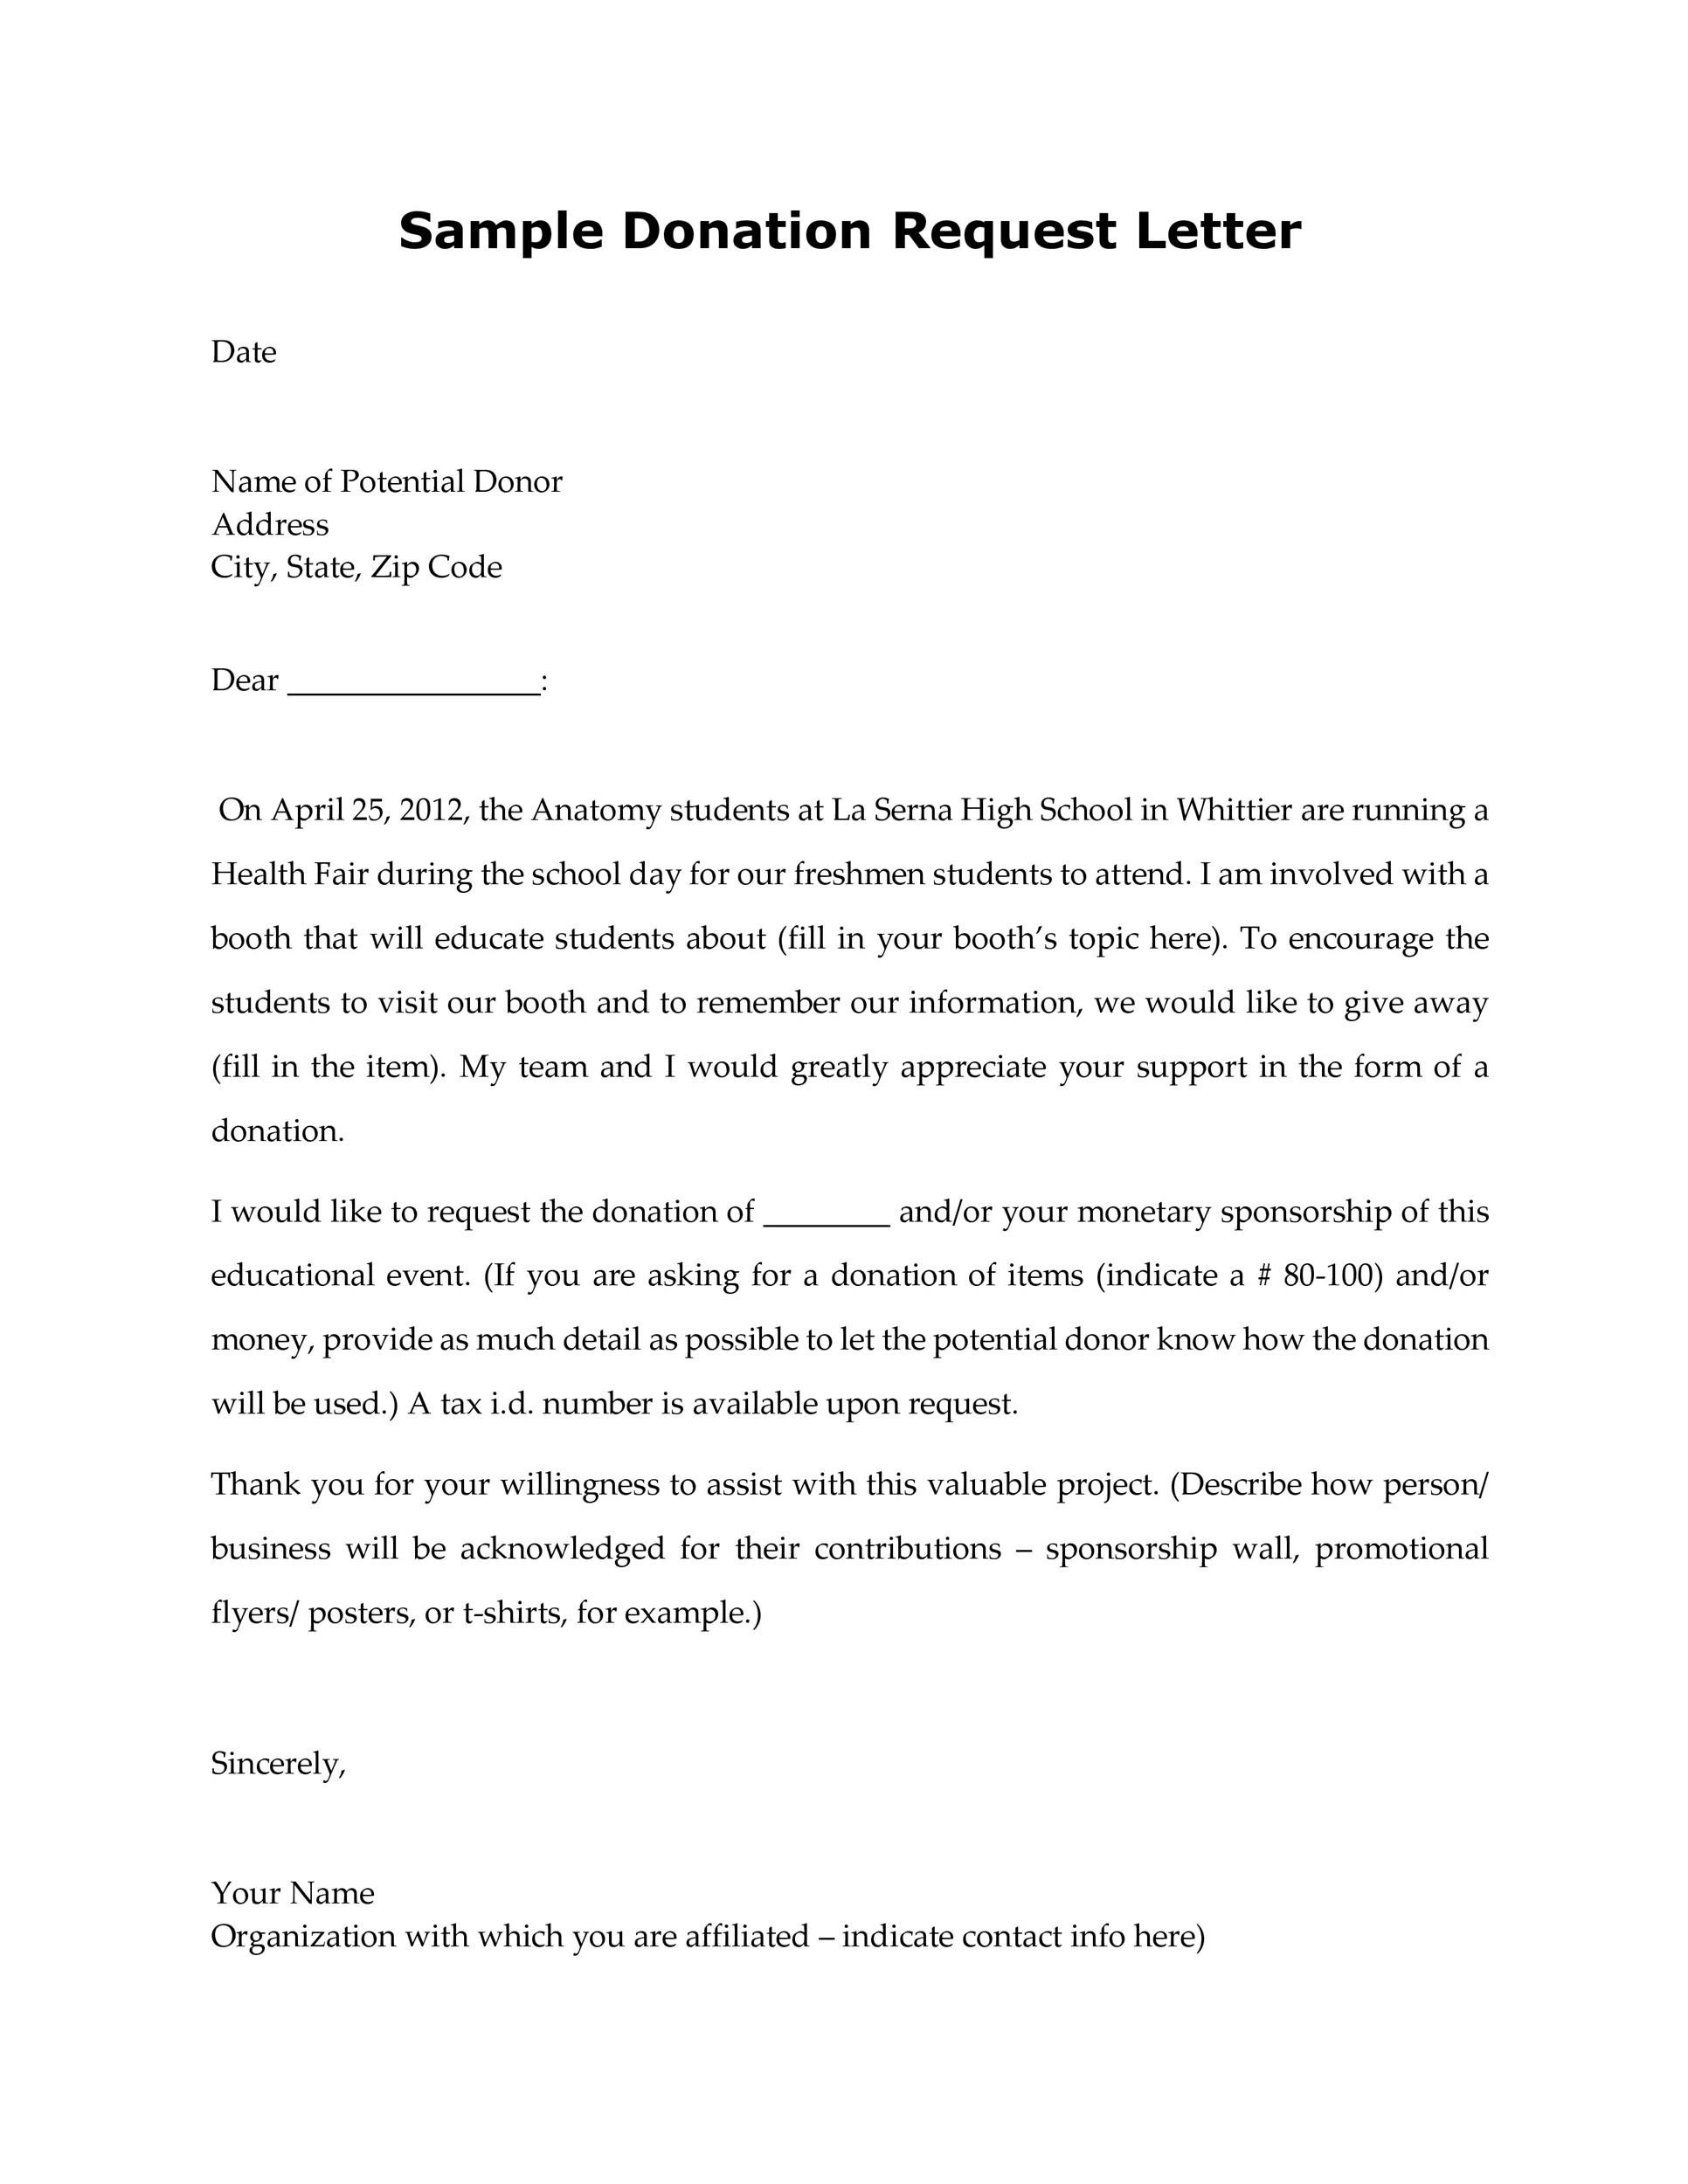 Sample declination letter to sponsorship